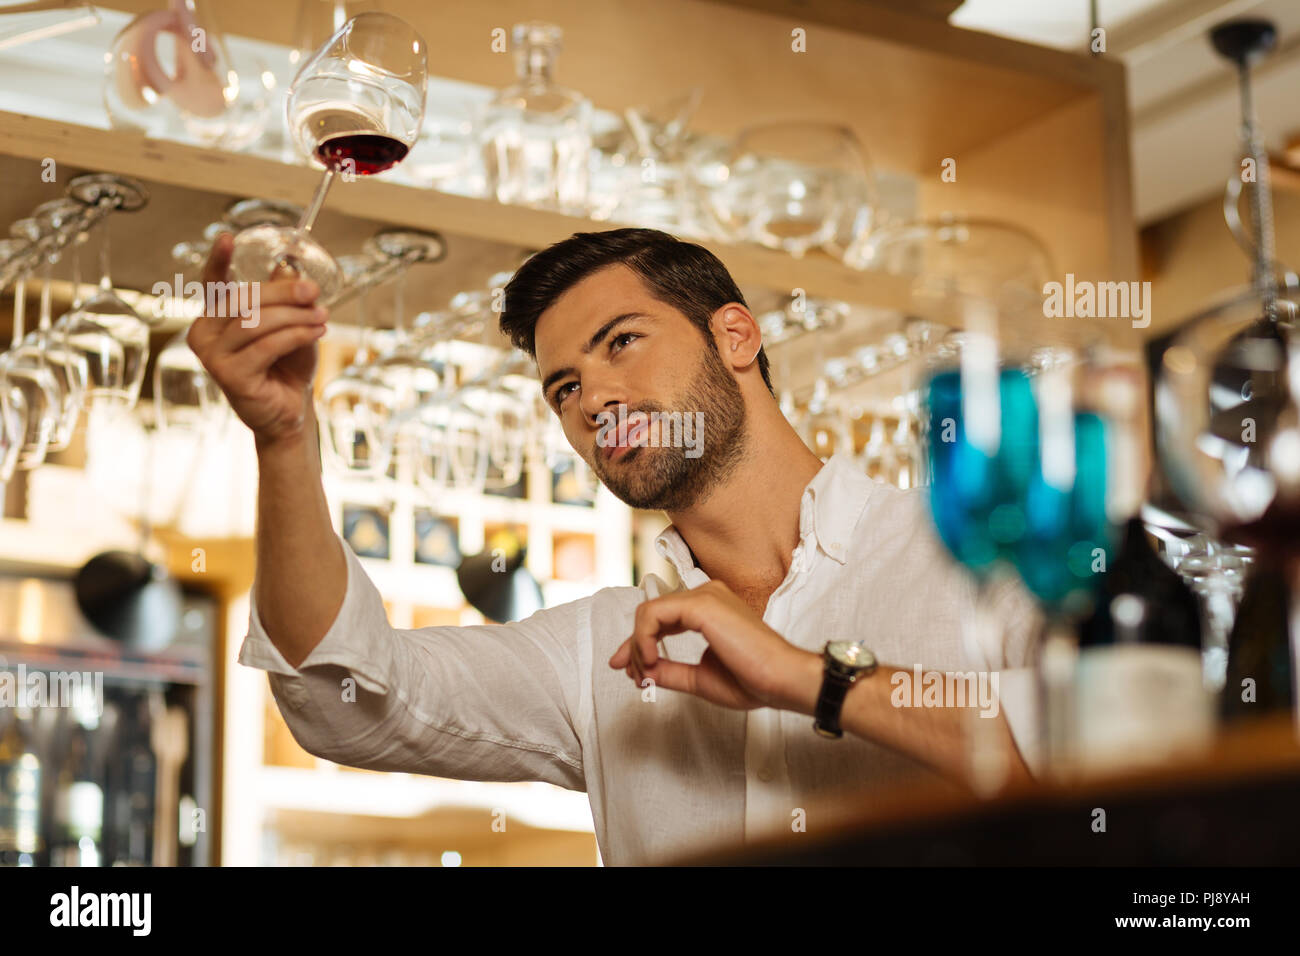 Handsome brunette man standing at the bar counter - Stock Image